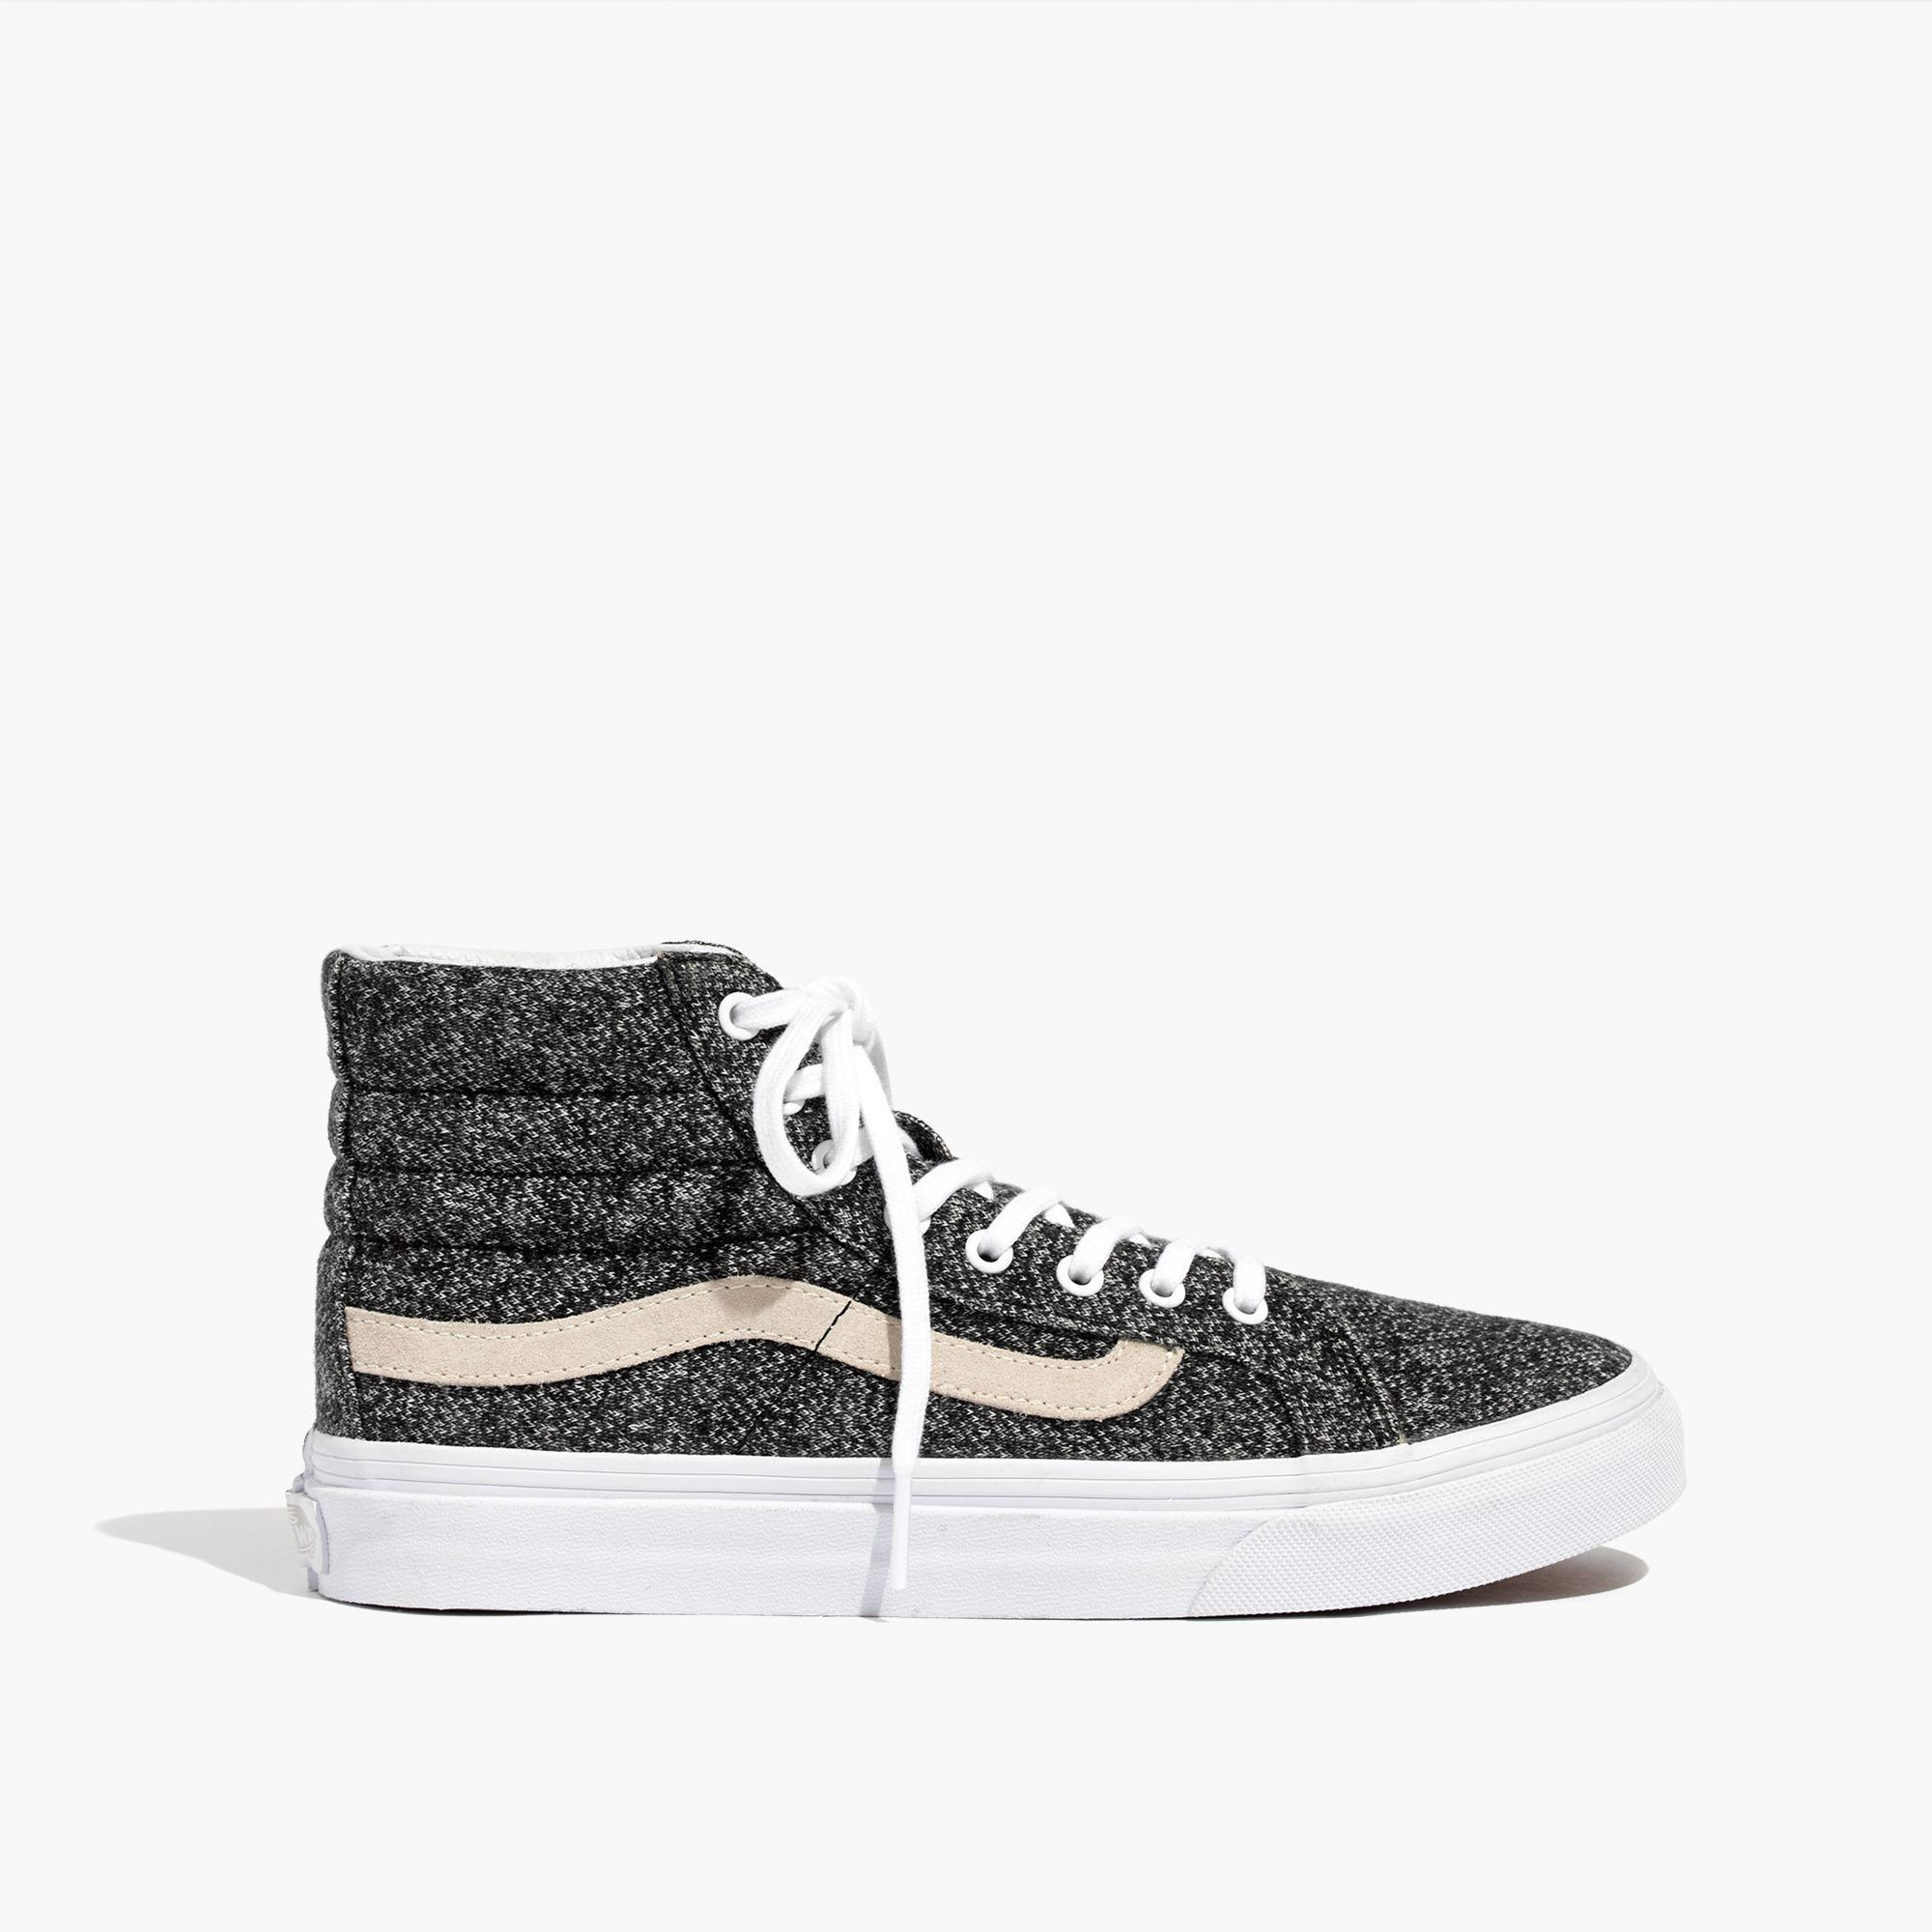 45de41262f Lyst - Madewell Vans® Unisex Sk8-hi High-top Sneakers In Marled ...